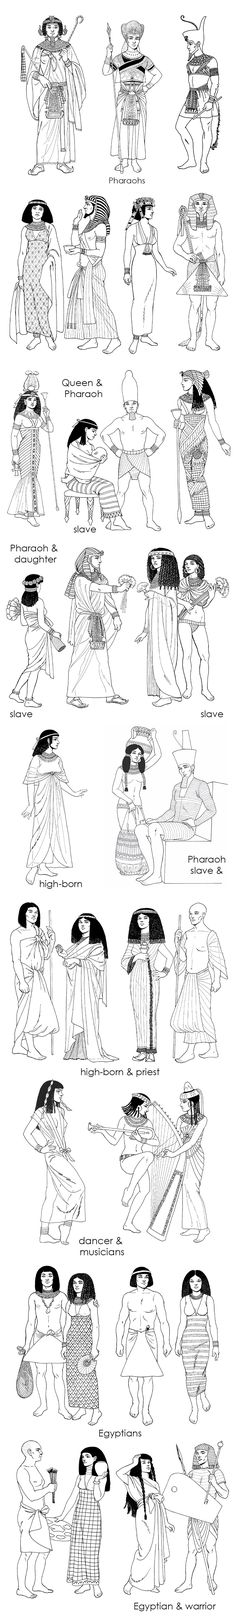 Pharaoh, queen, slave dress cides in Ancient Egypt Ancient Art, Ancient History, Ancient Aliens, Egyptian Fashion, Egyptian Mythology, Egyptian Pharaohs, Egyptian Queen, Egyptian Goddess, Egypt Art